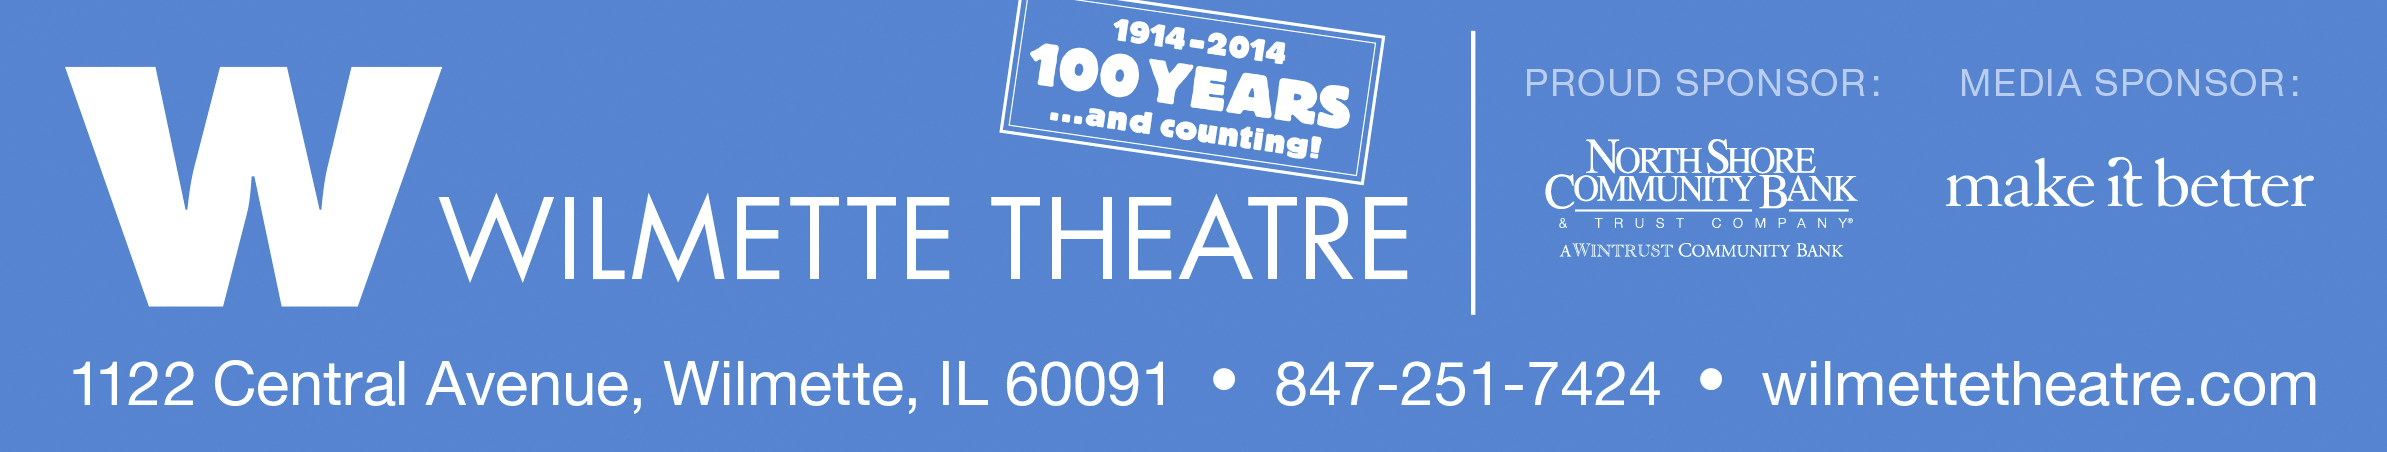 Wilmette_Theatre_logo_banner_1214 white background.jpg